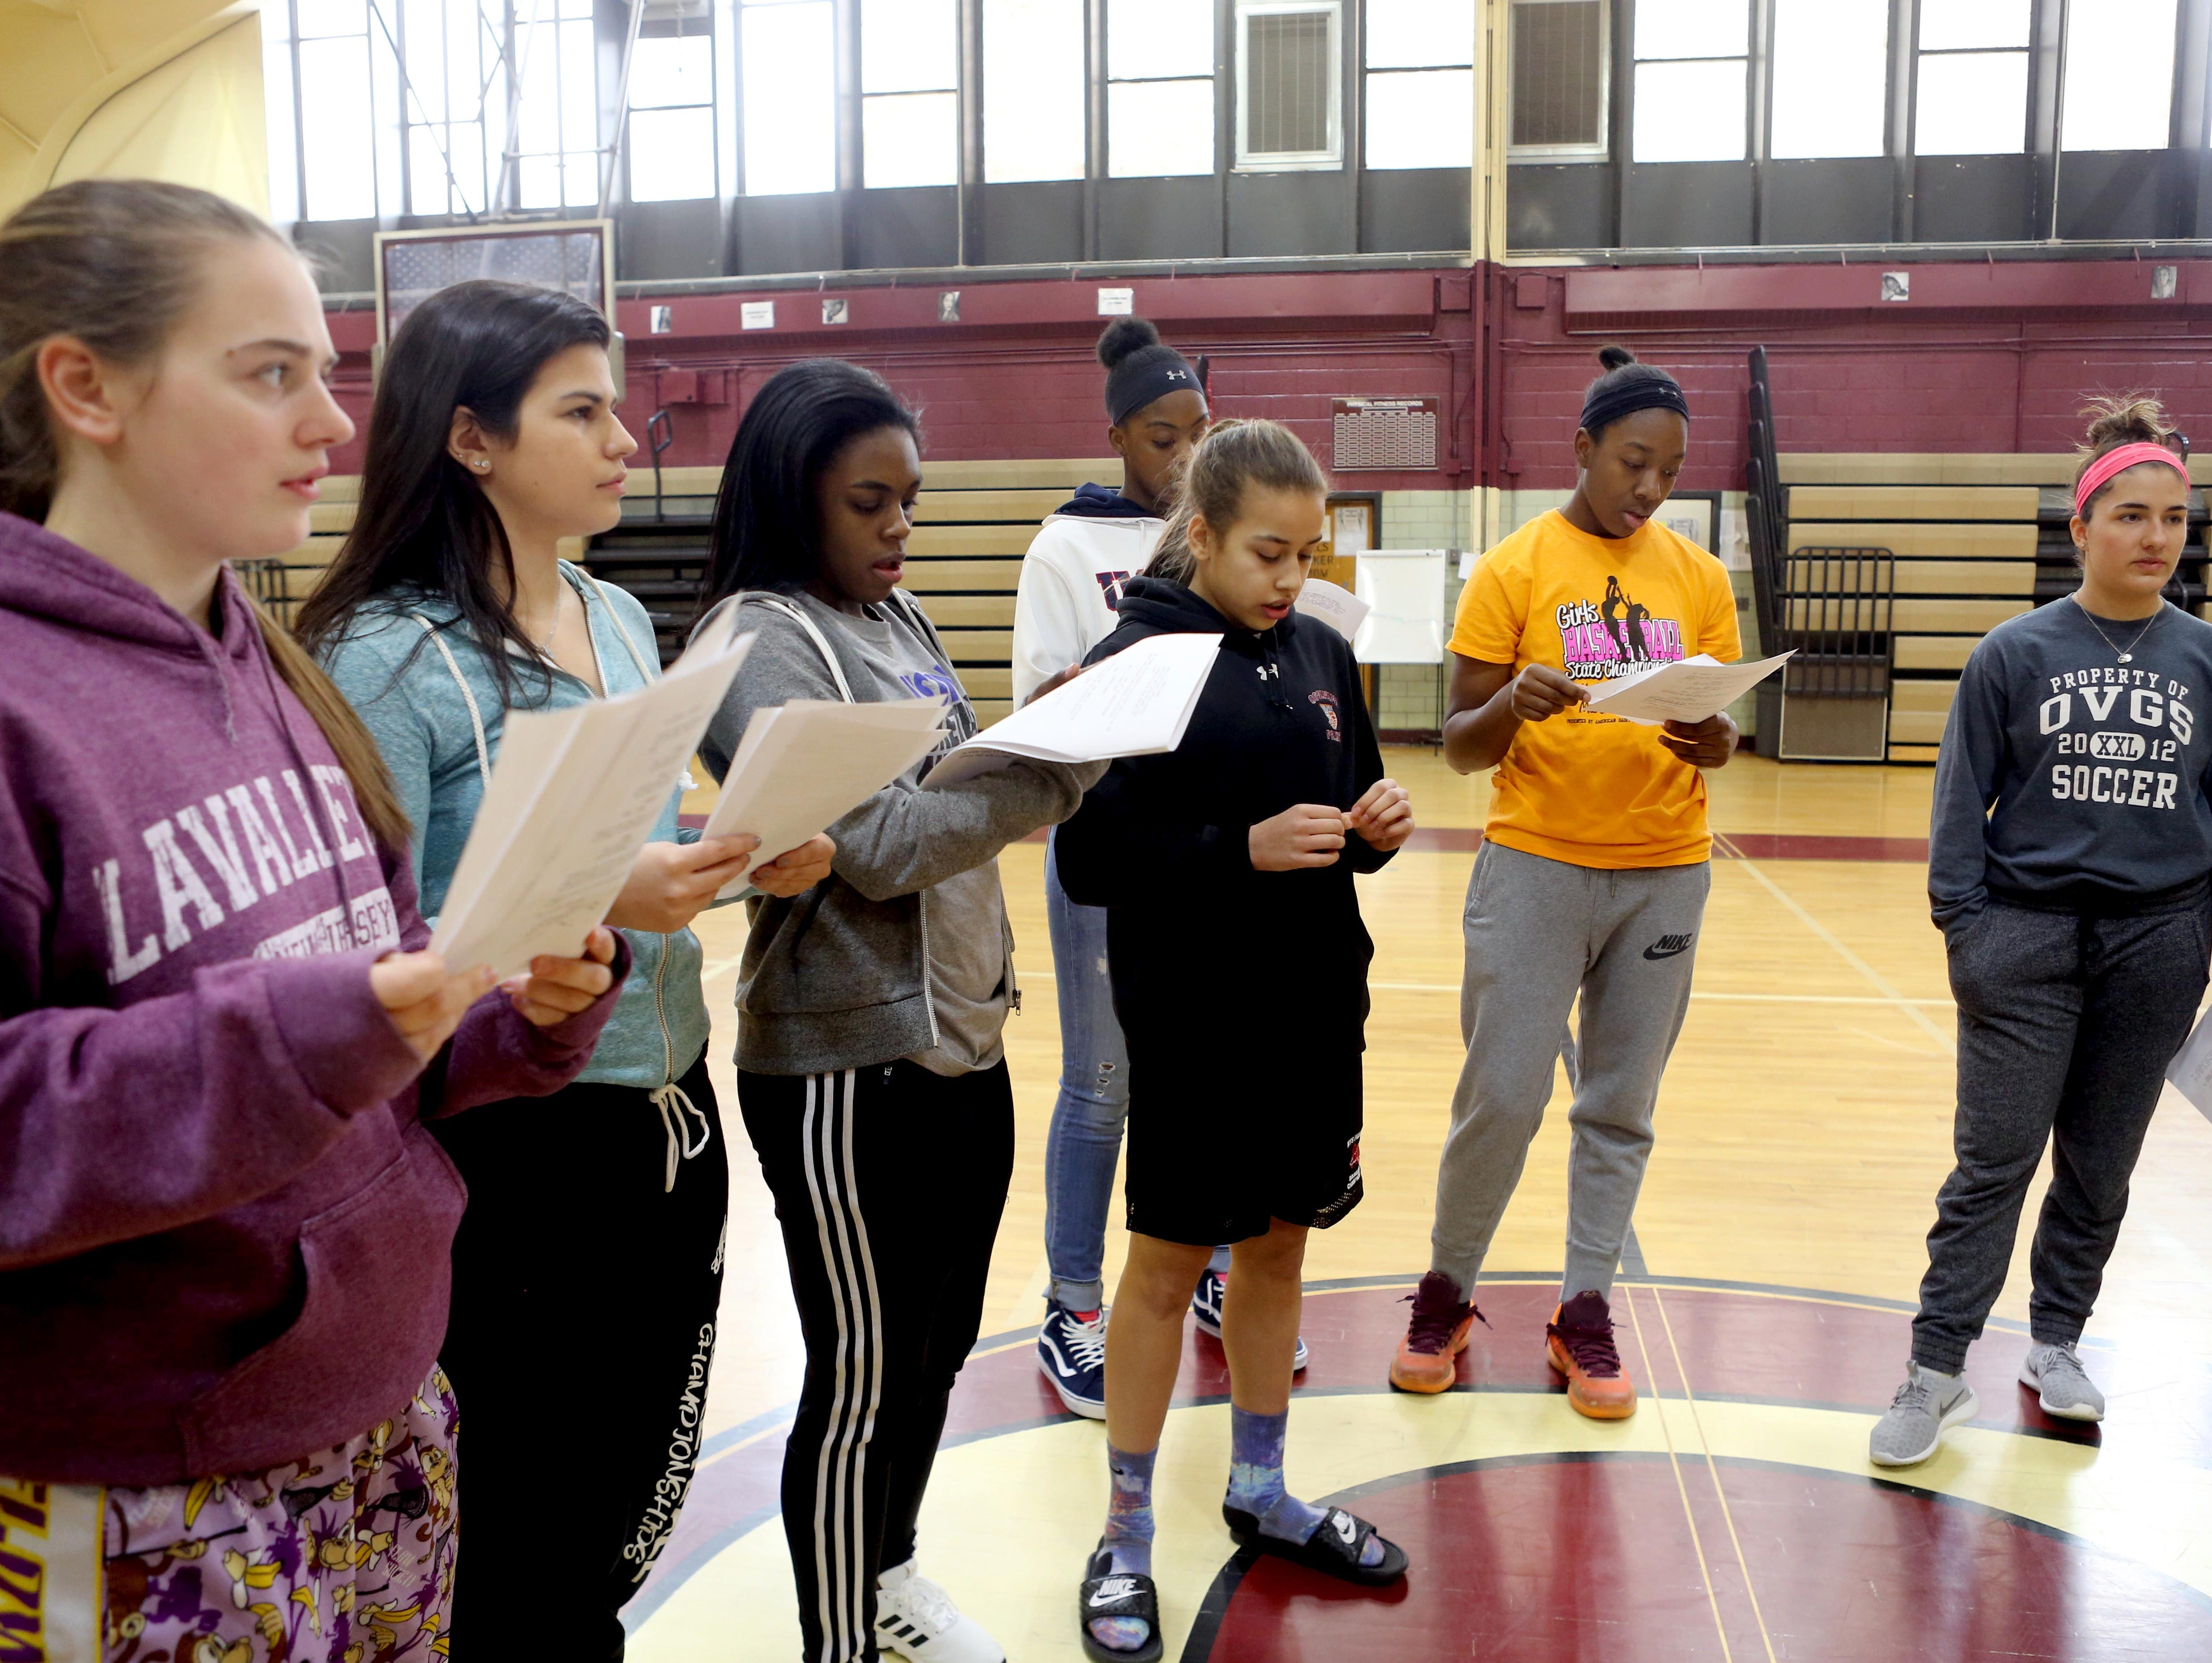 Members of the Ossining High School girls basketball team go over their lines for a film that they are taking part in at the school March 24, 2016. The film, being directed by Jessica Hester, a graduate of Ossining High School, deals with the subject of menstruation and is designed to make both men and women comfortable with talking about the subject openly.